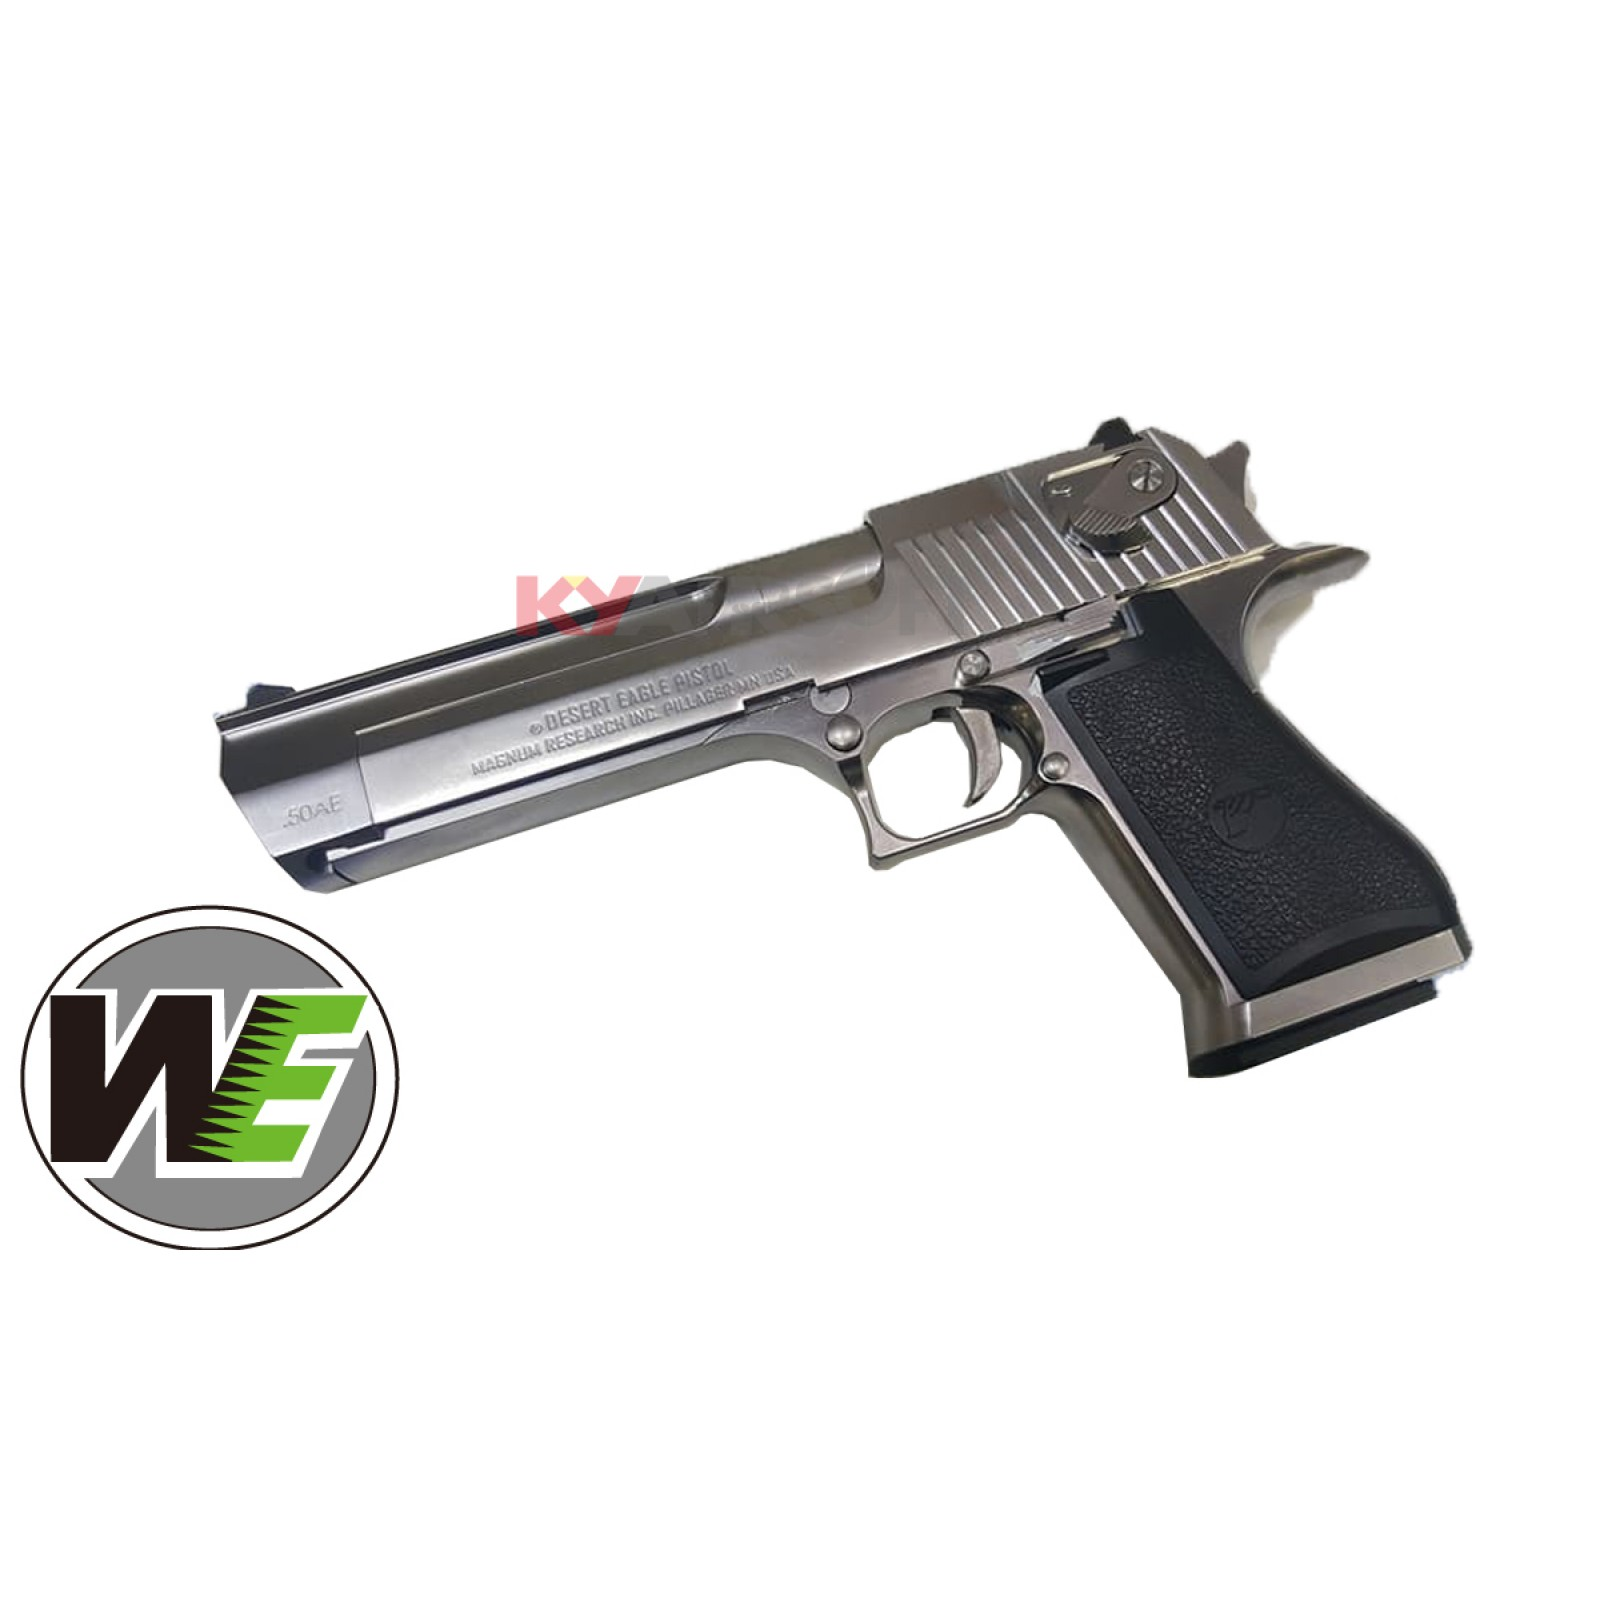 WE - Cybergun licensed Desert Eagle  50 Cal GBB pistol with marking